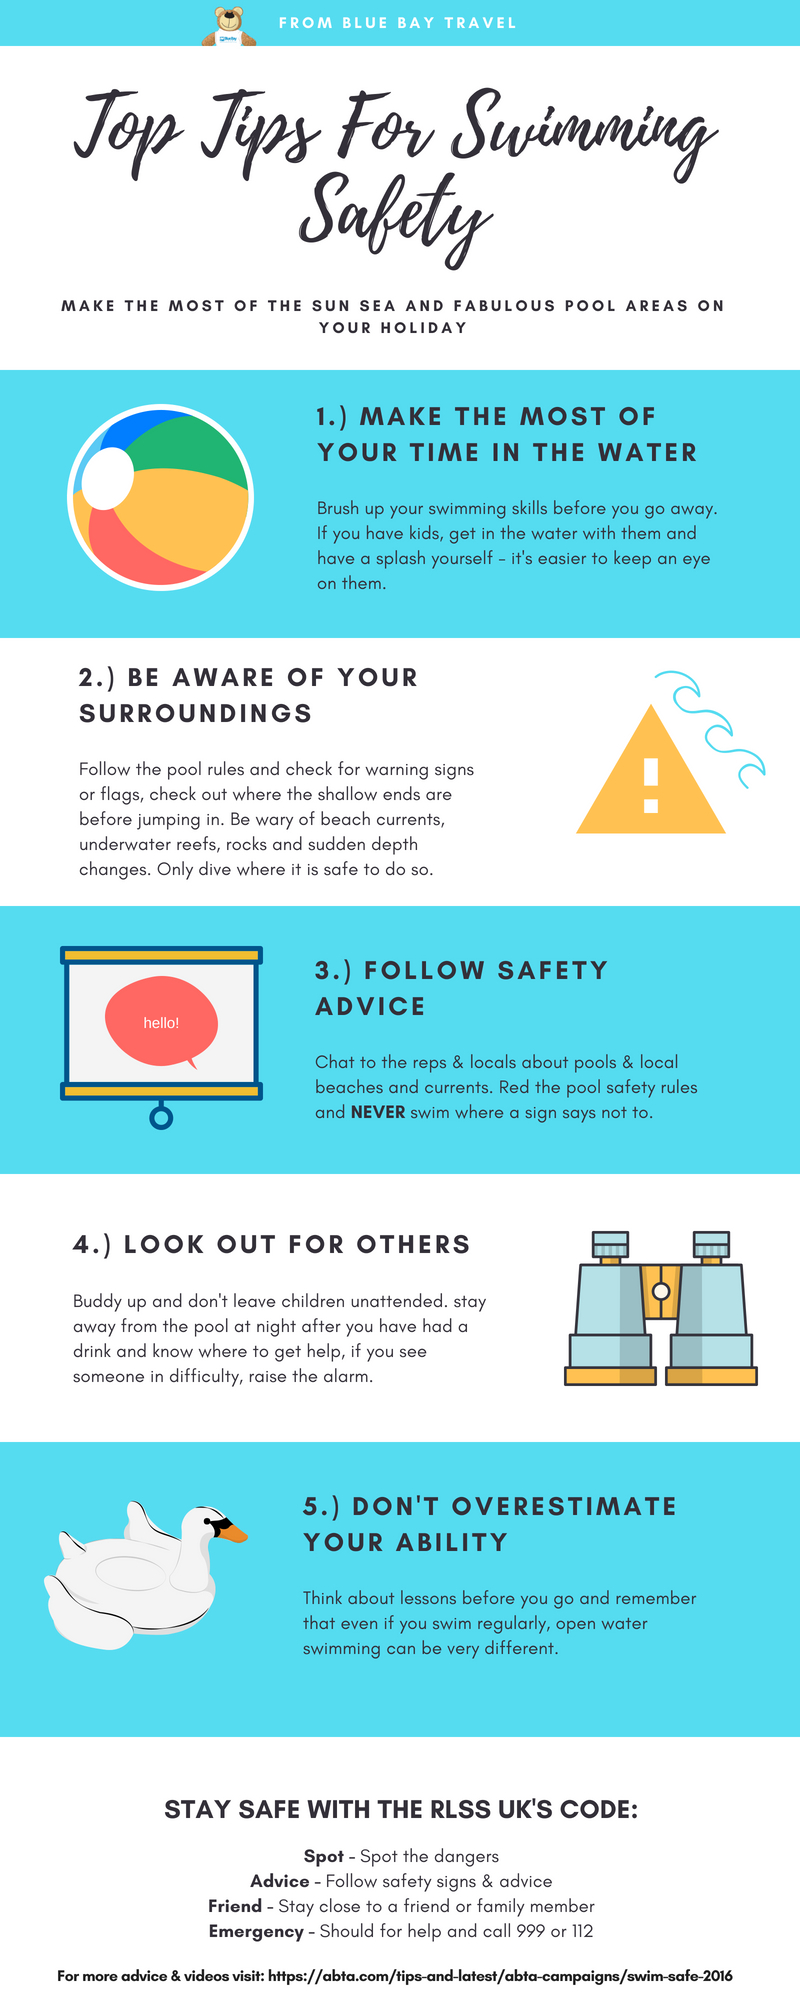 Top Tips fop swimming safety from bluebaytravel.co.uk